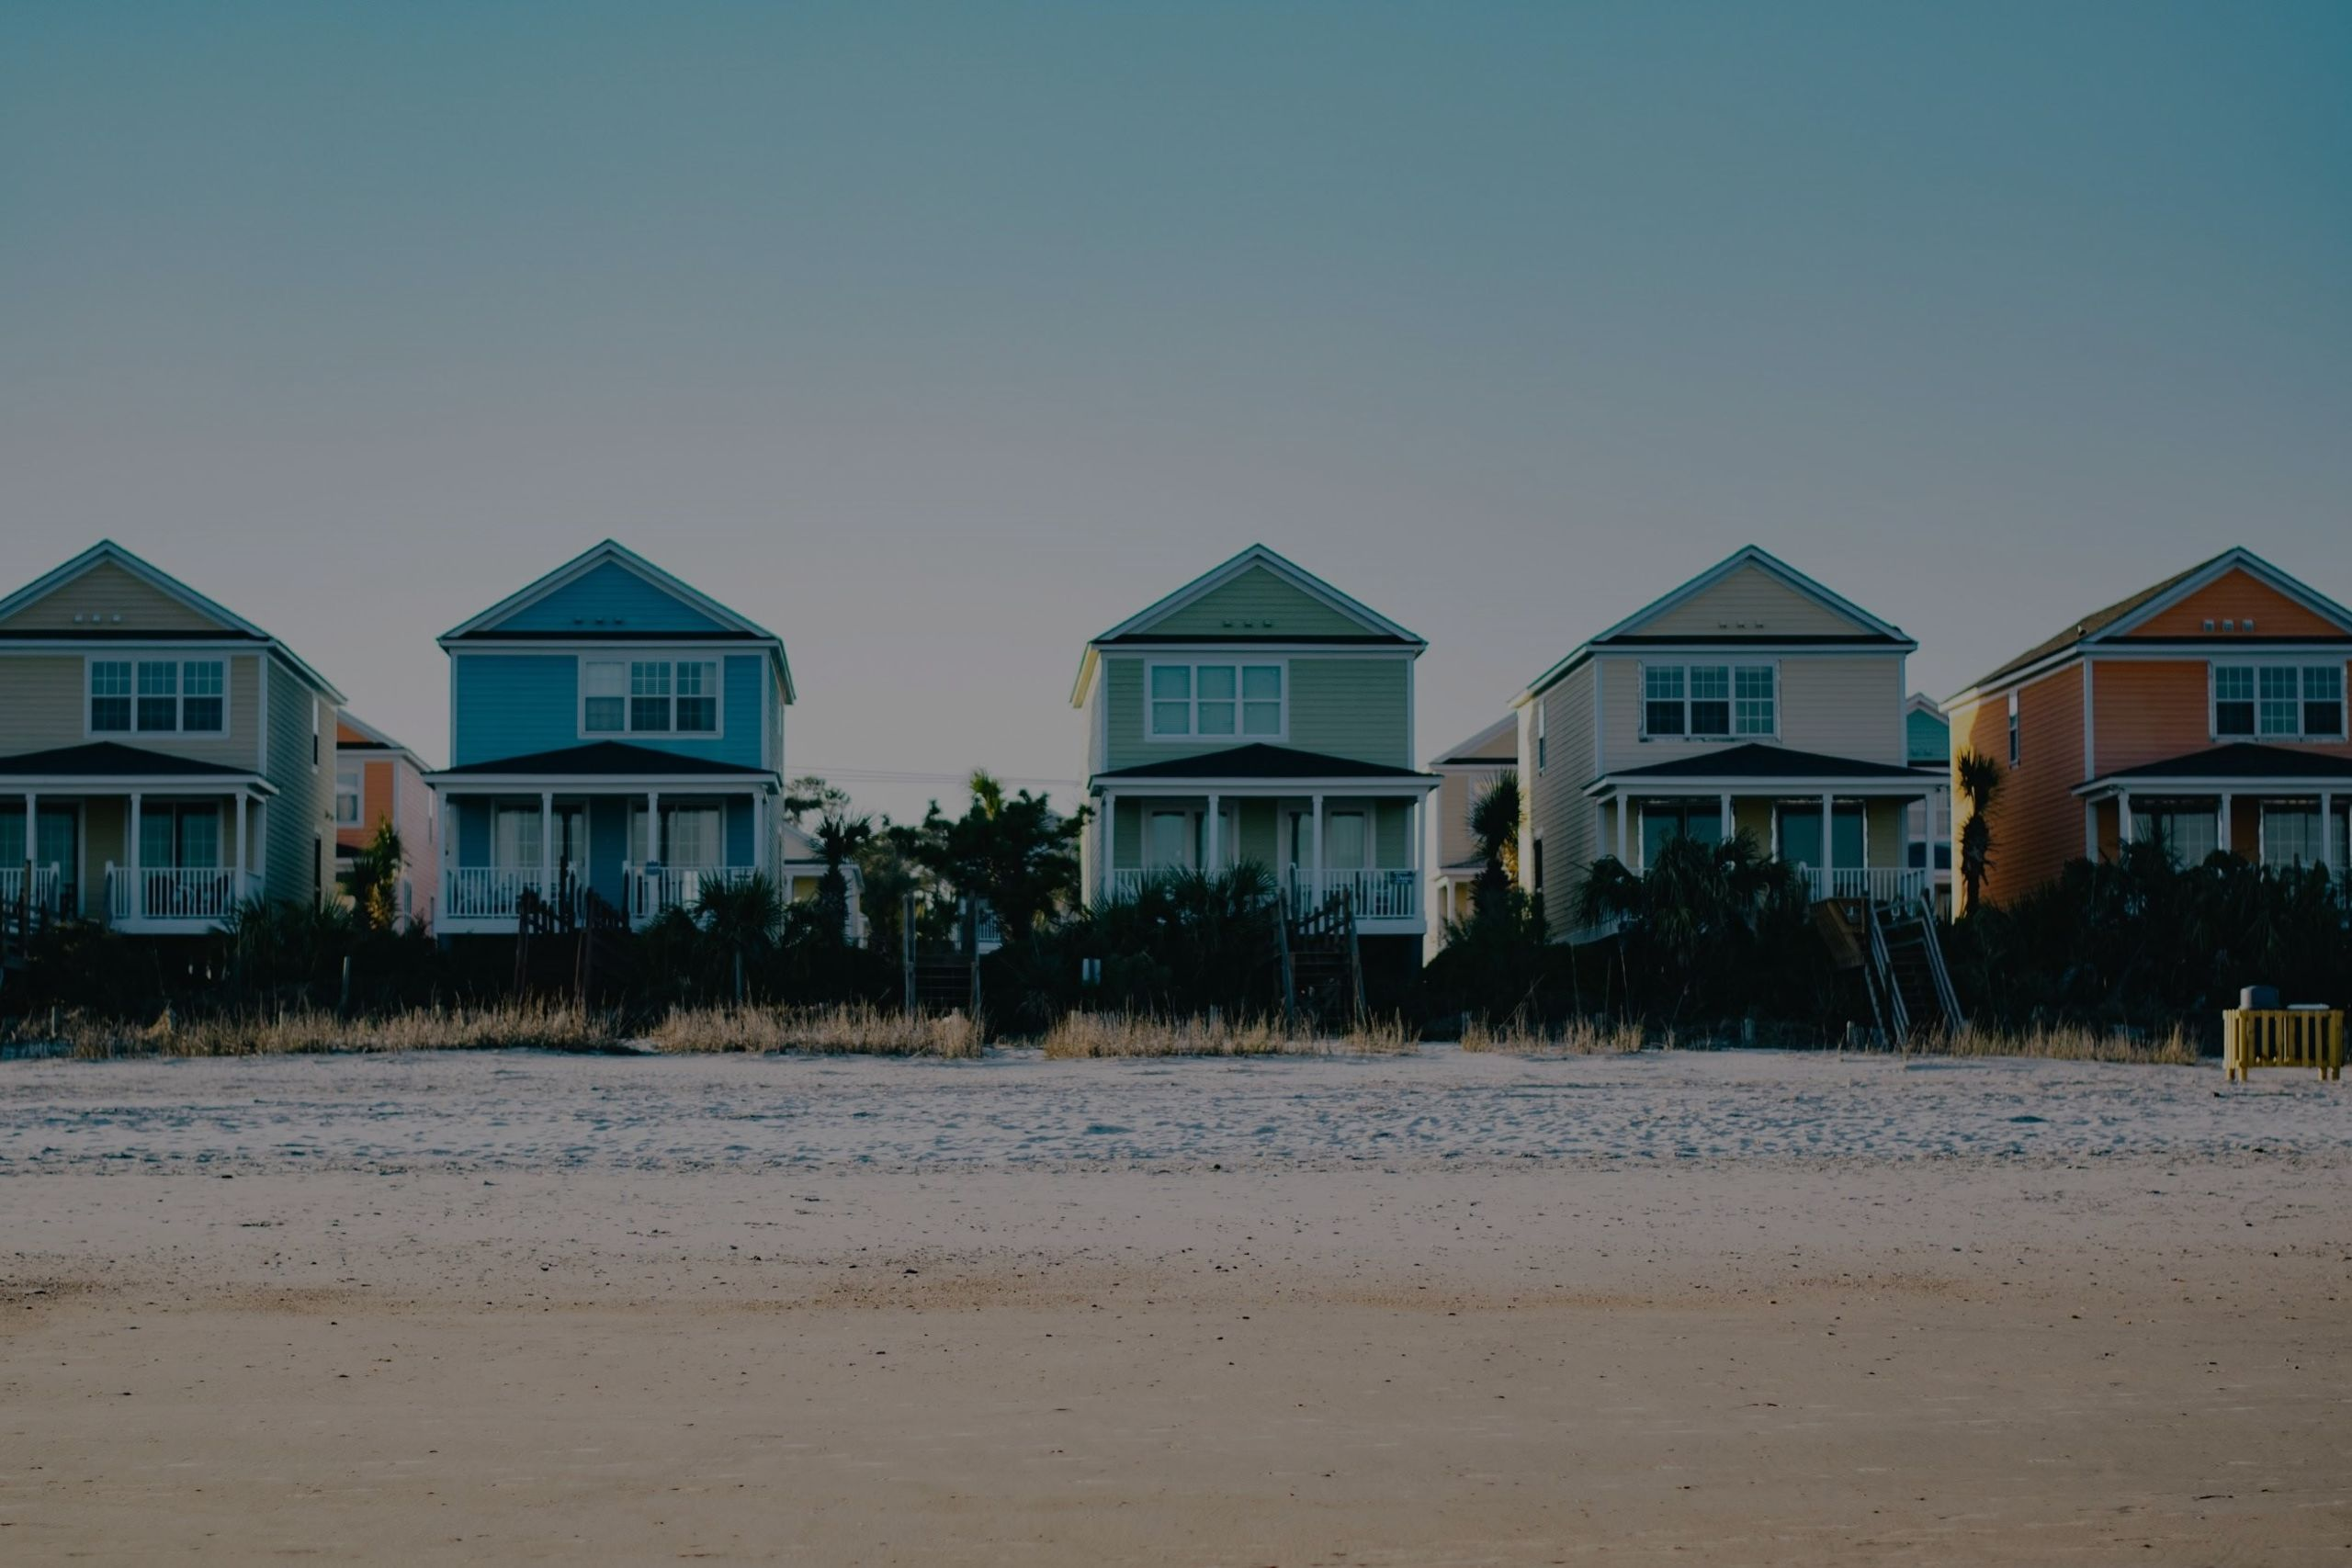 Is a Vacation Rental a Smart Investment?